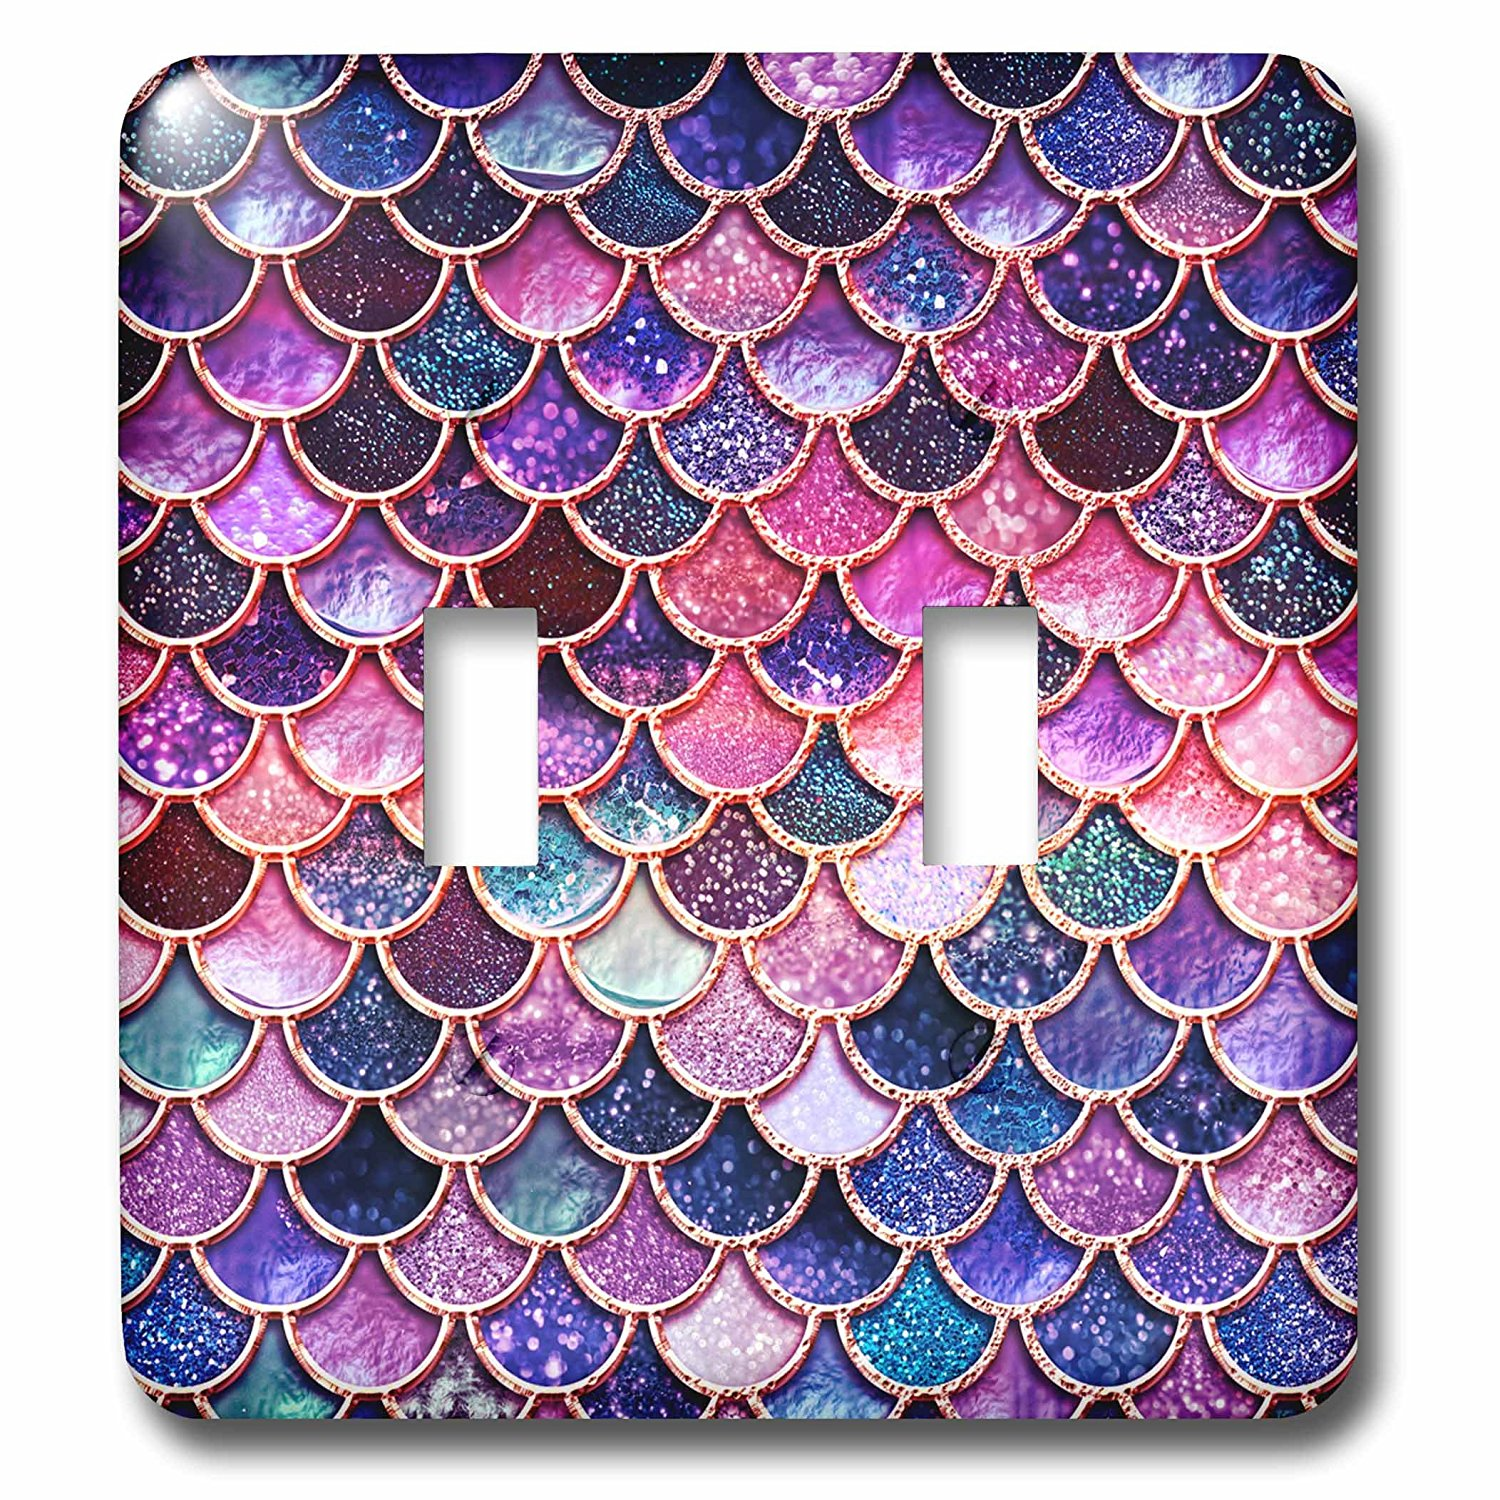 3dRose Uta Naumann Faux Glitter Pattern - Multicolor Girly Trend Pink Luxury Elegant Mermaid Scales Glitter - Light Switch Covers - double toggle switch (lsp_272859_2)